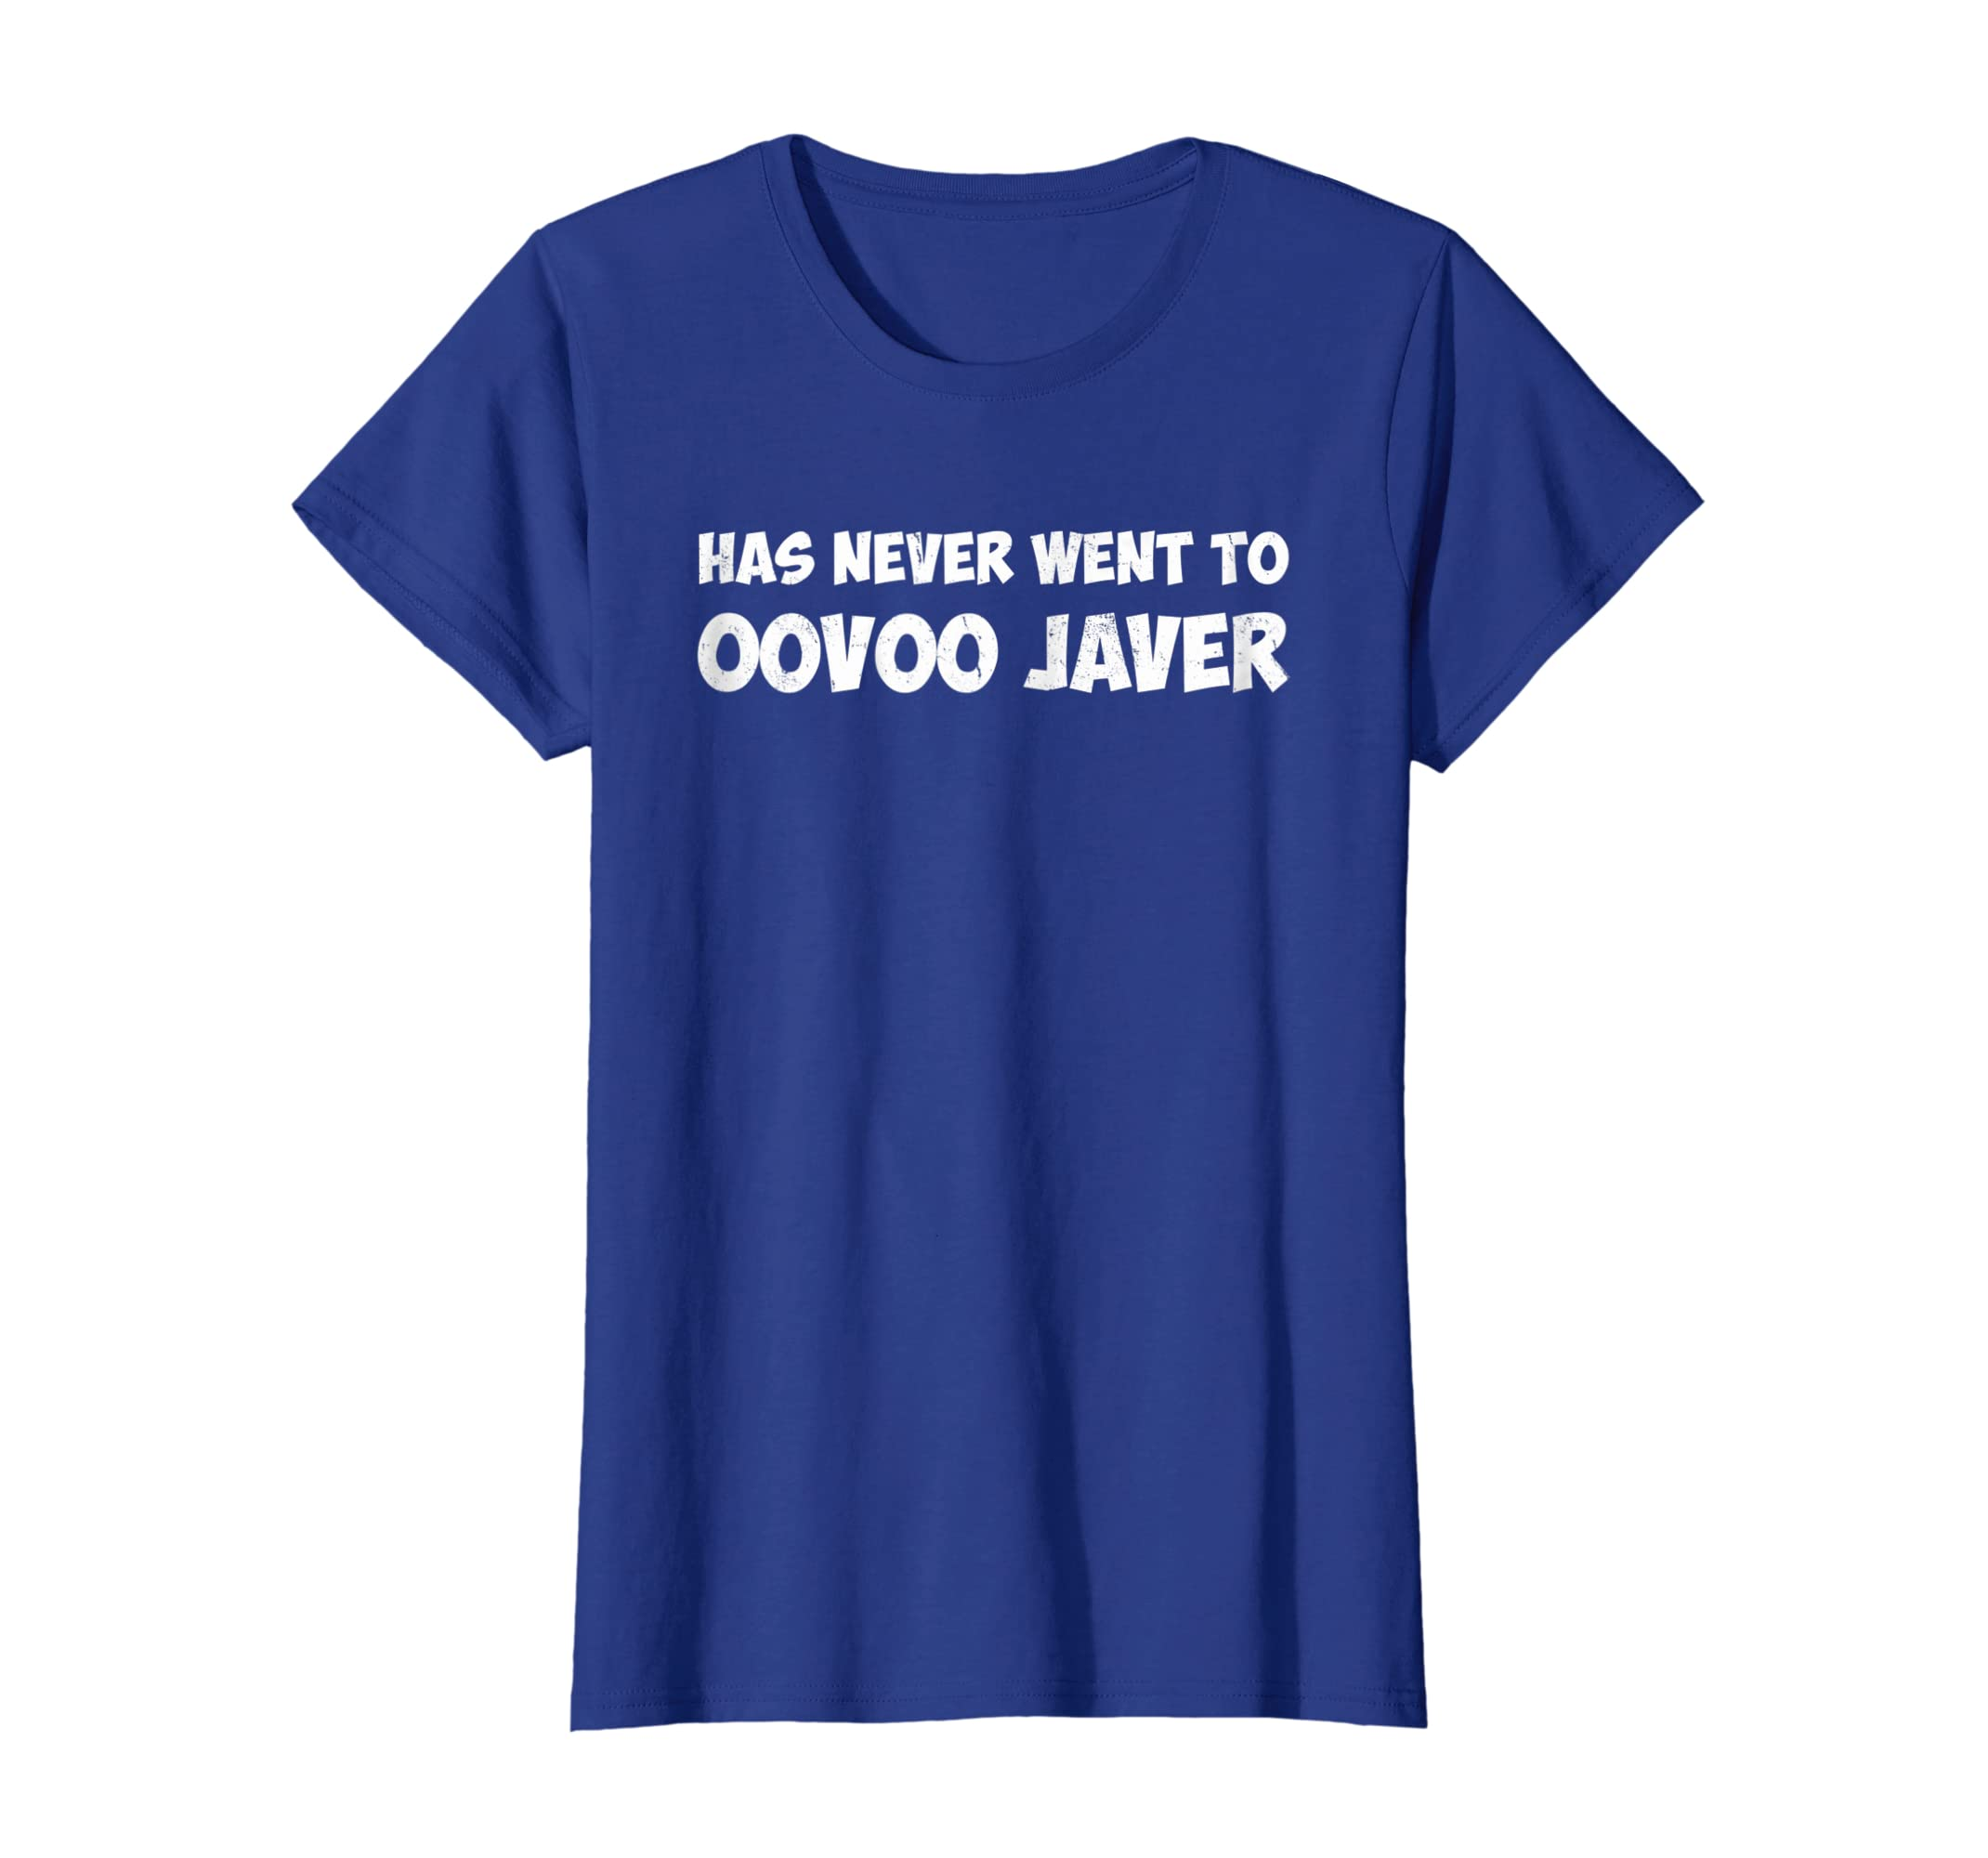 Amazon com: Has Never Went To Oovoo Javer Vine Meme T Shirt: Clothing